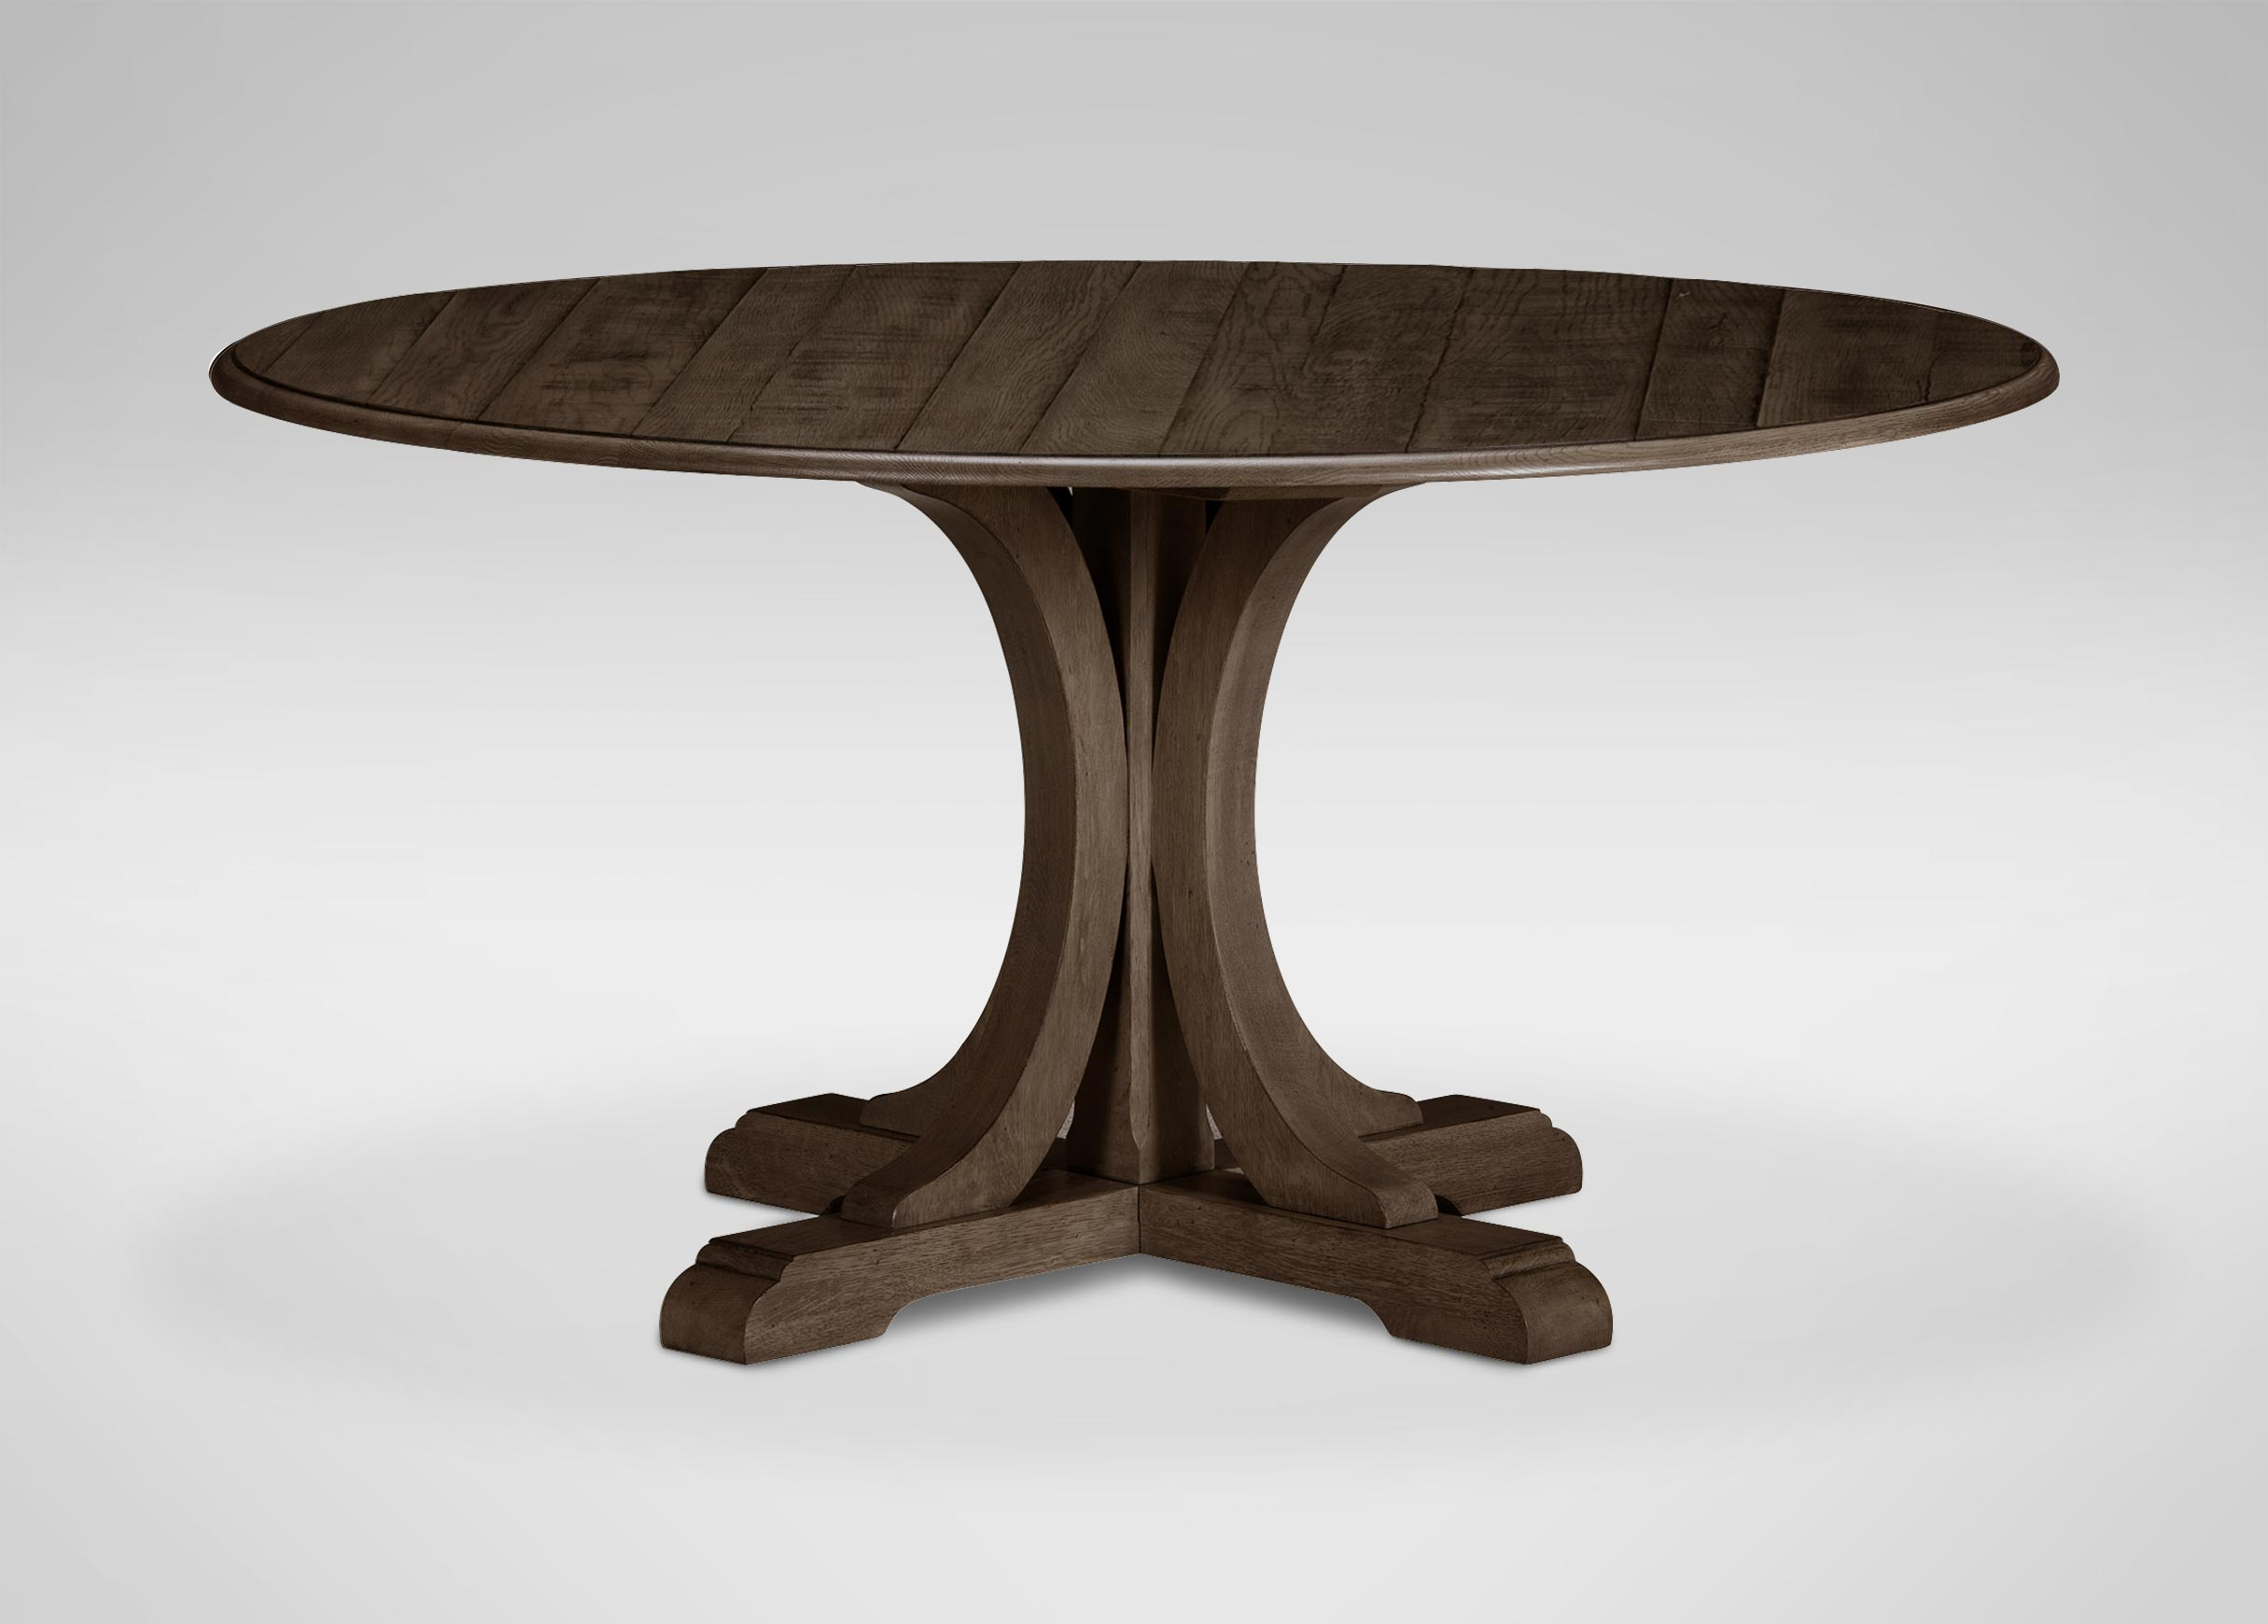 Ethan Allen Corin Table $2,599